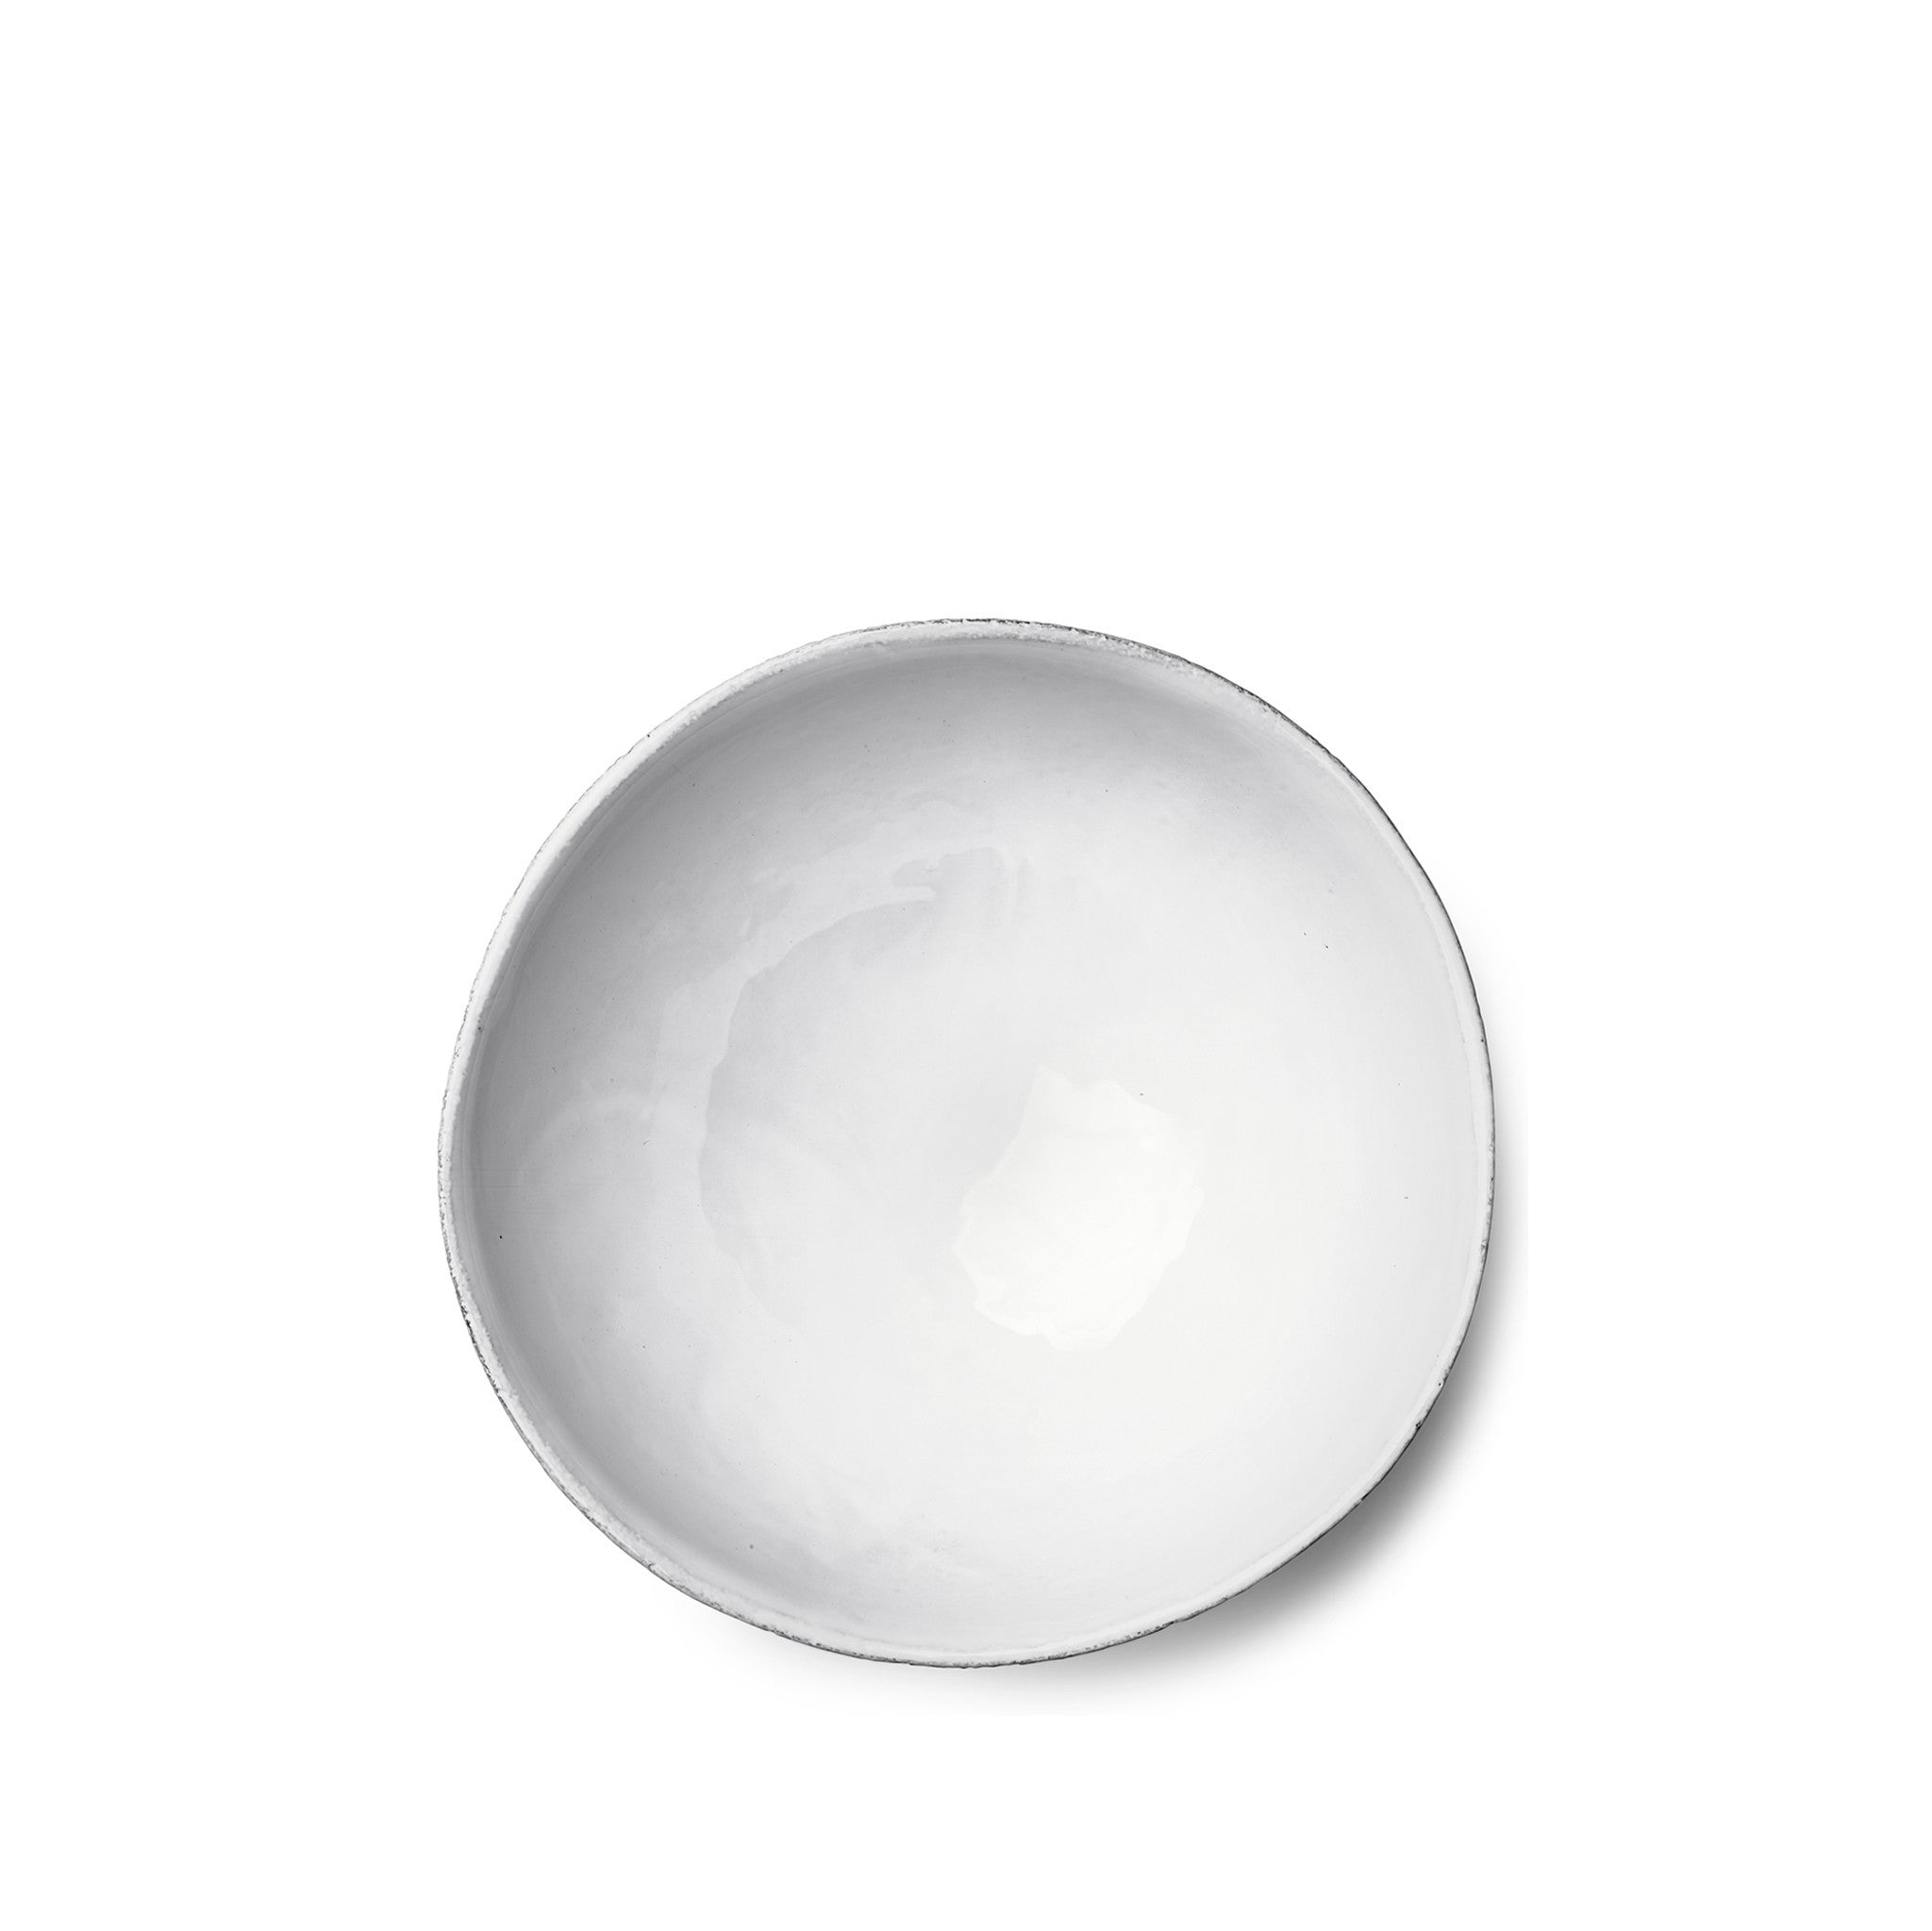 Sobre Large Salad Bowl by Astier de Villatte